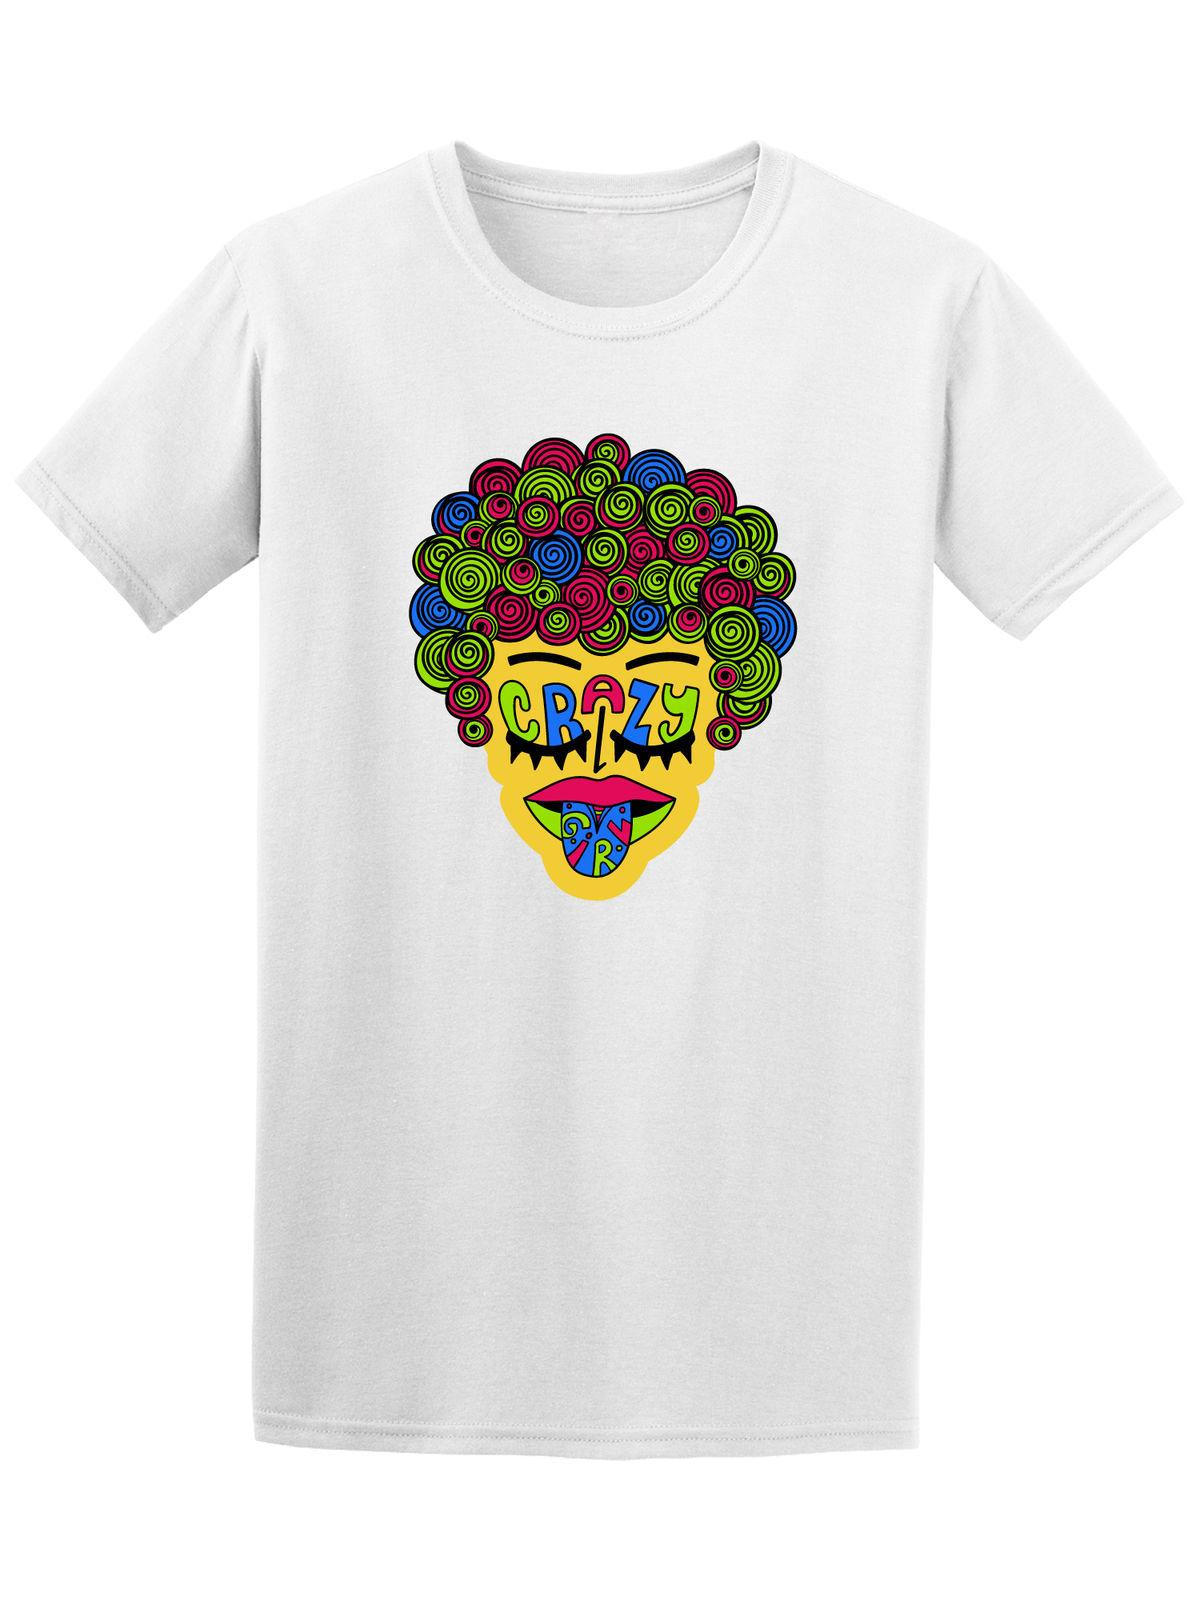 78b4cc415a0f Abstract Art Woman Face Color Graphic Tee Image By Shutterstock Cool Funny T  Shirt Men High Quality Tees Print T Shirt Men Of T Shirt T Shirt On From ...